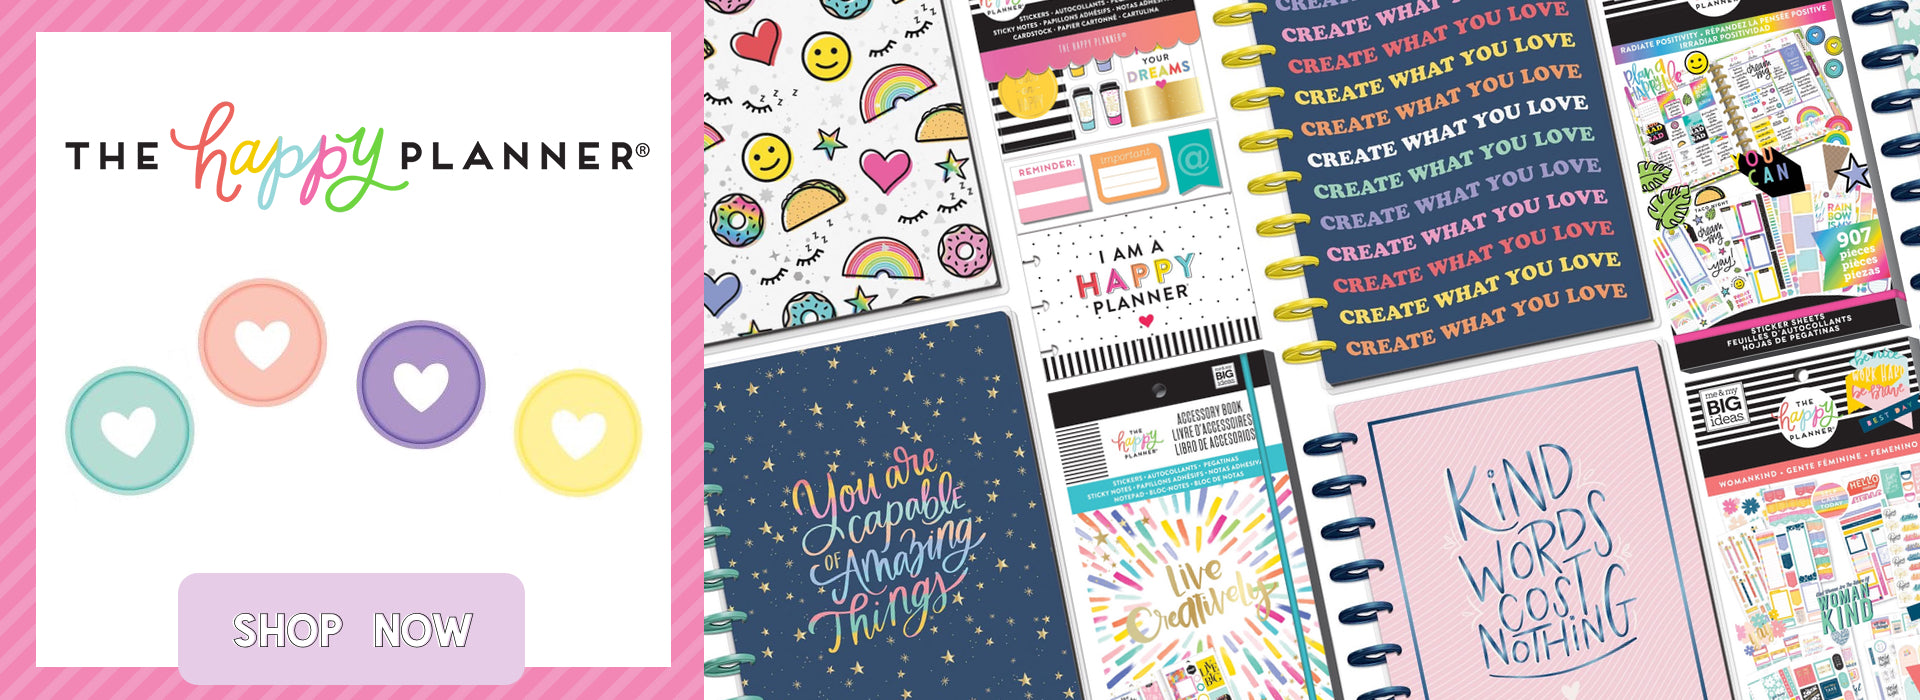 graphic relating to Planner Supplies referred to as WashiGang - Planners, Planner Materials, Washi Tape - Australia